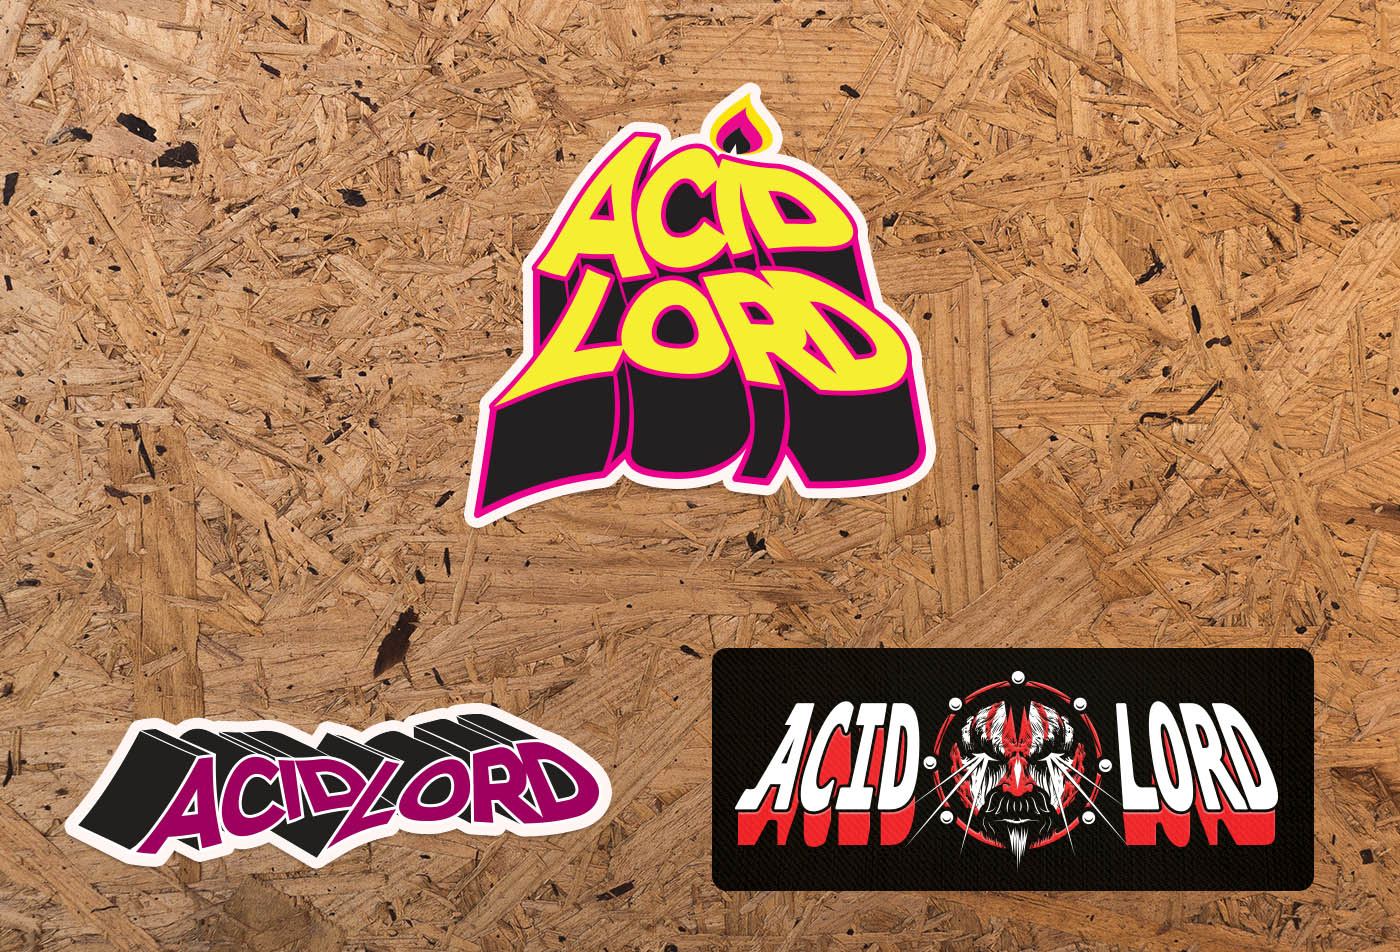 Acid_Lord_LogoCollection.jpg